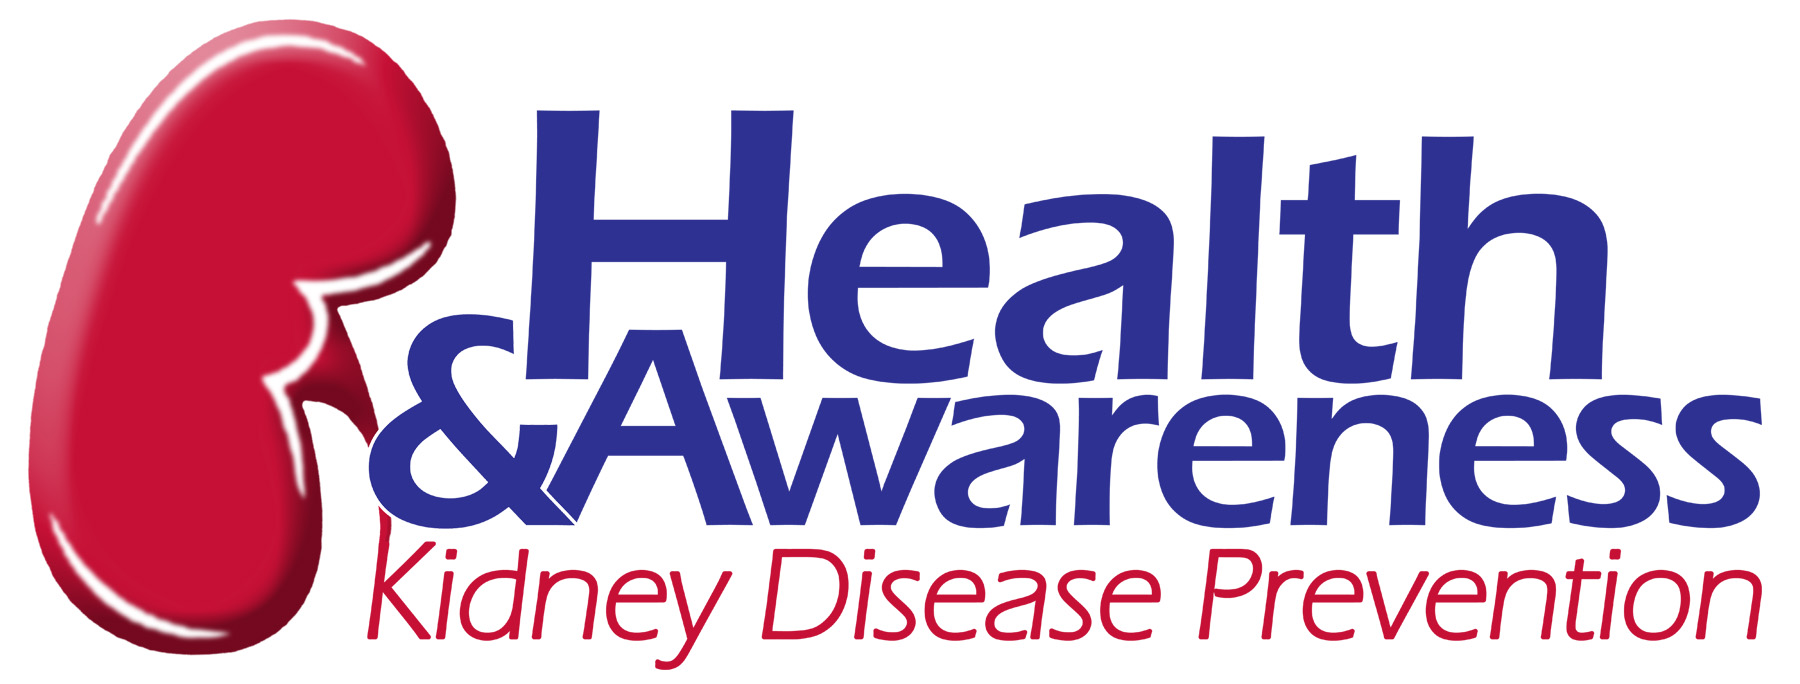 Chronic Kidney Disease Prevention